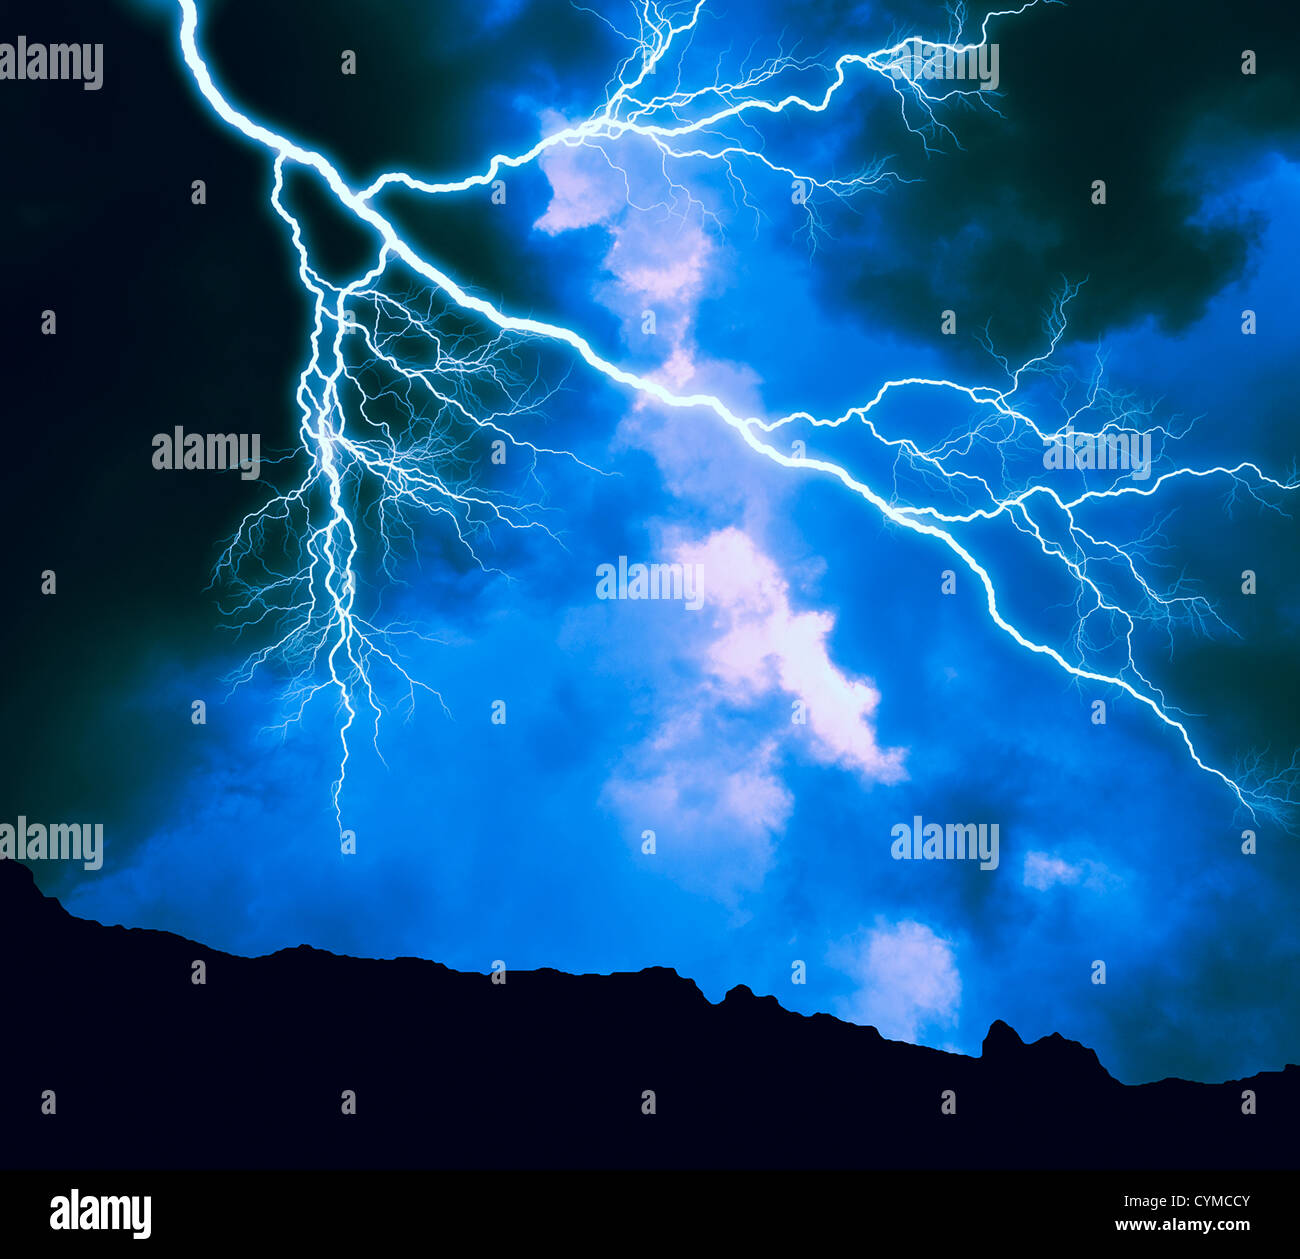 lightning storm in wilderness area - Stock Image